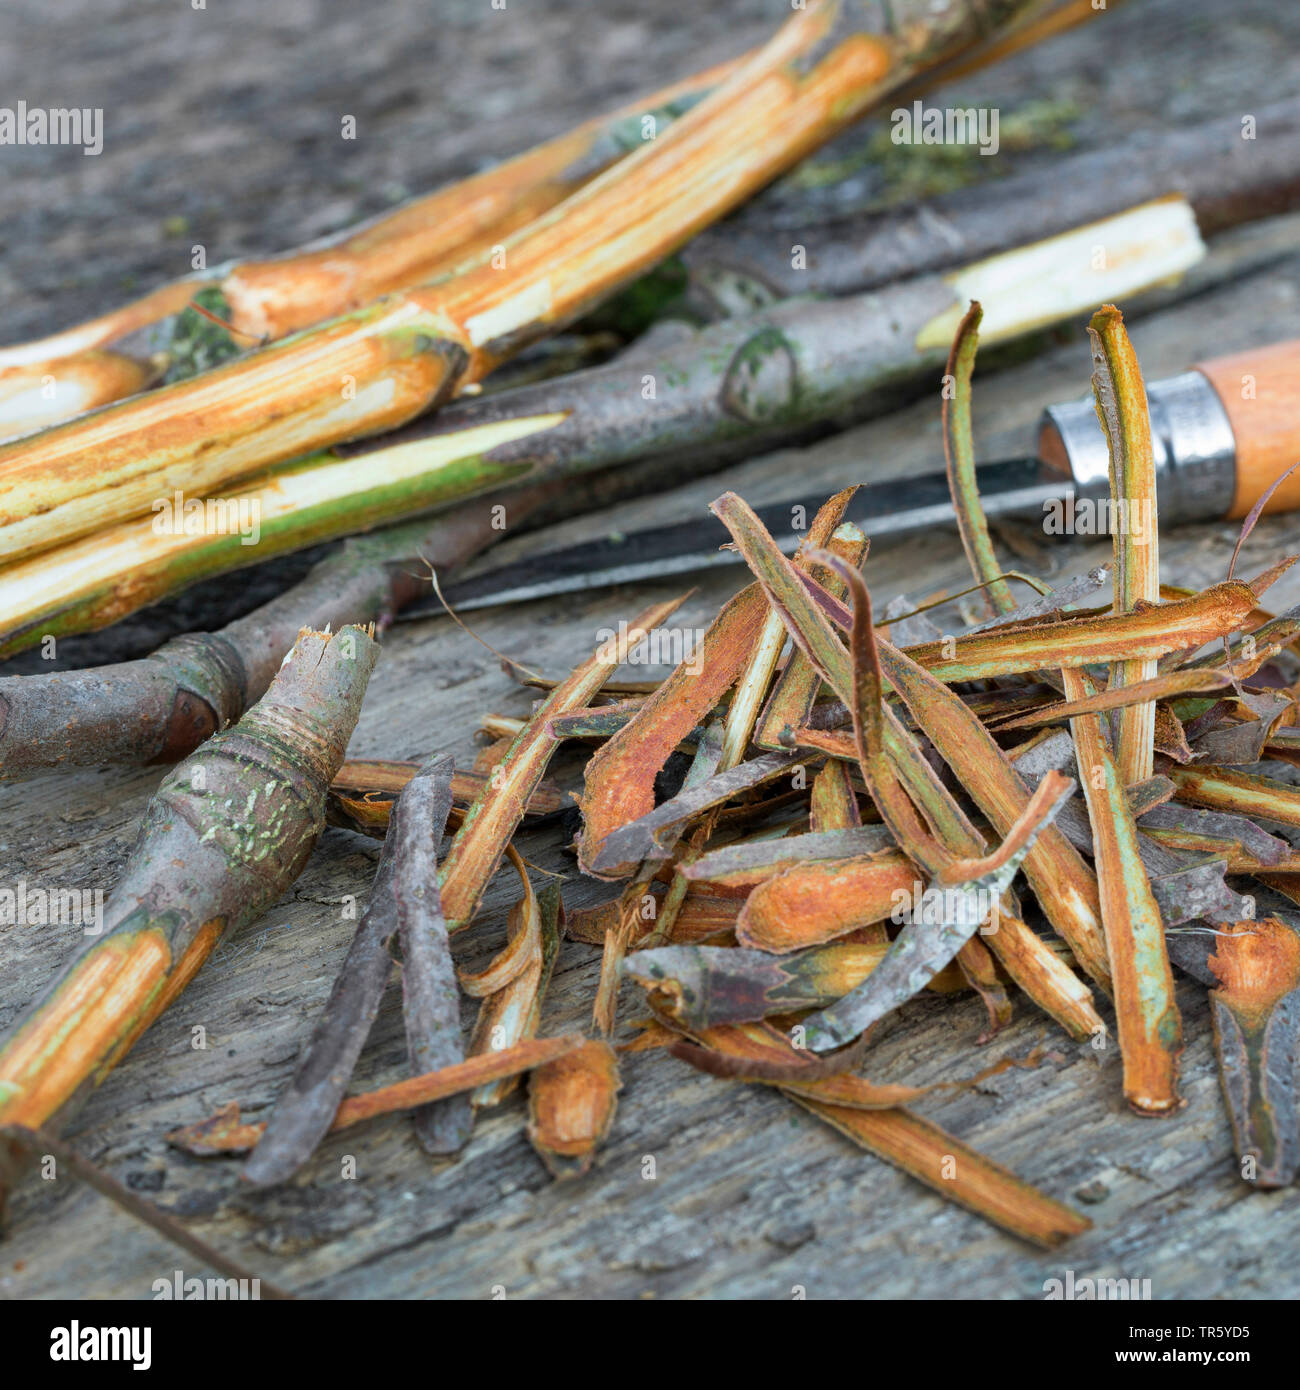 common horse chestnut (Aesculus hippocastanum), bark of horse chestnut branches are peeled, Germany - Stock Image